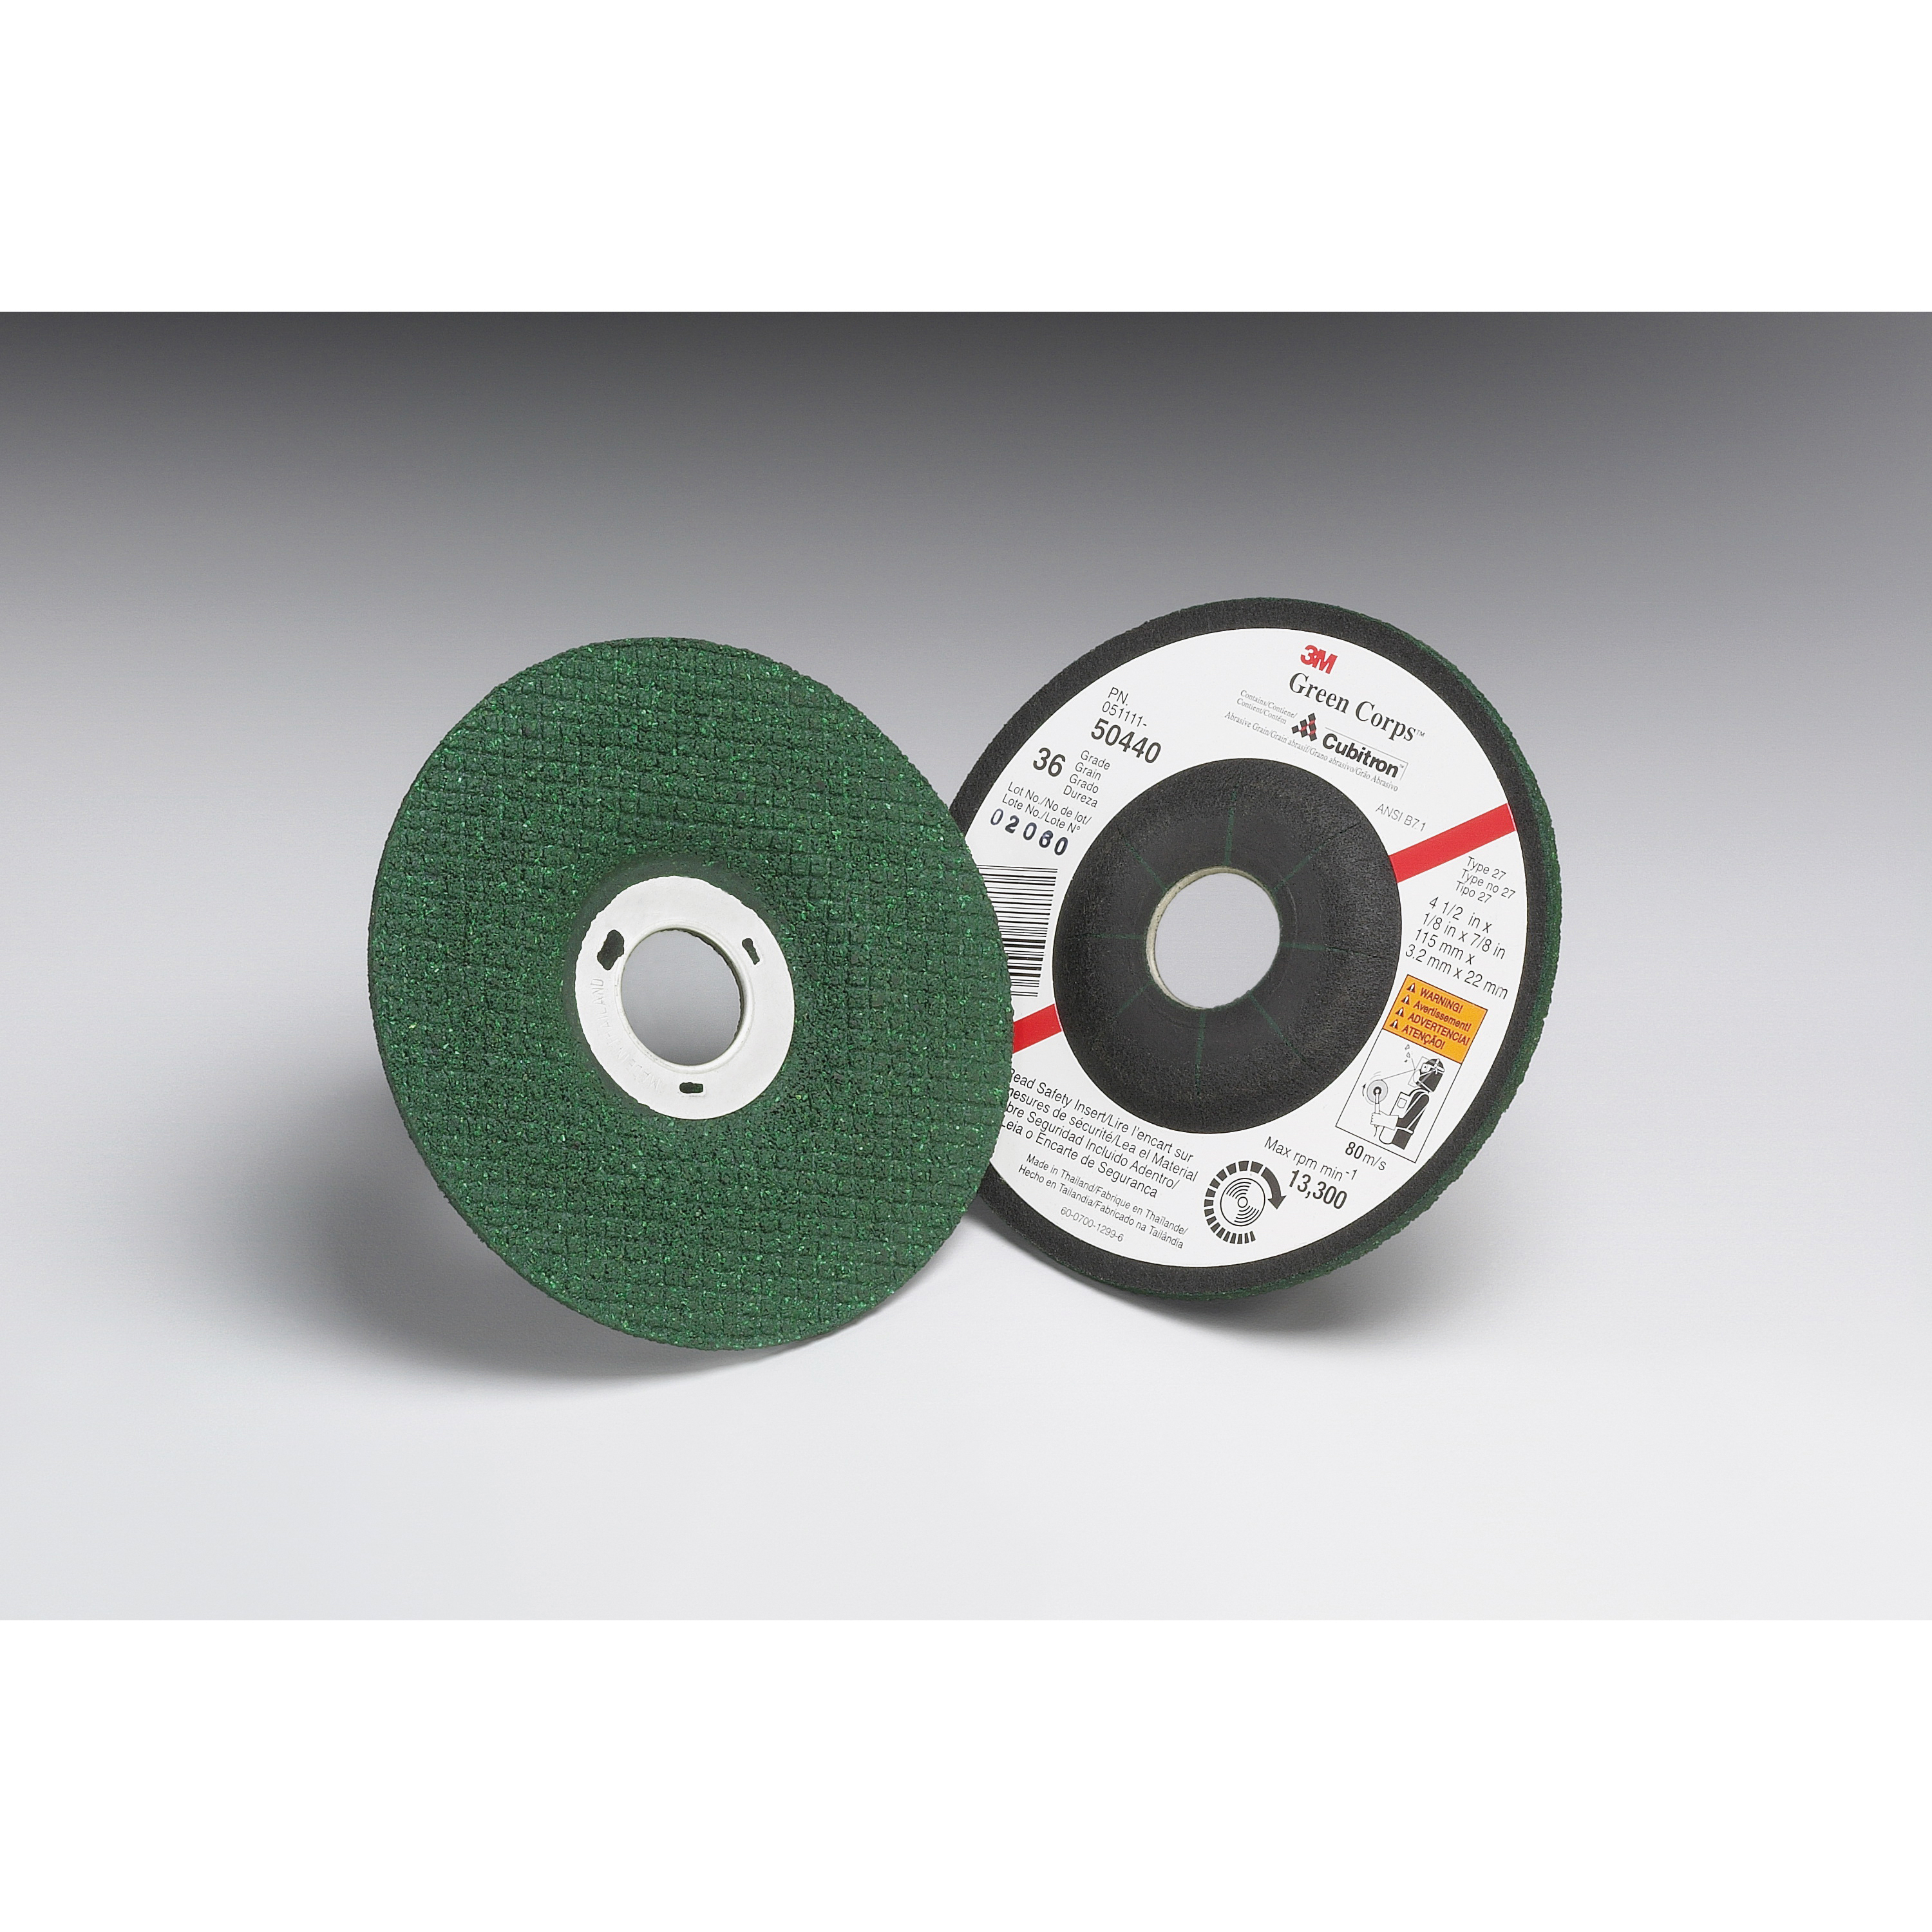 3M™ Green Corps™ 051111-50440 Flexible Grinding Wheel, 4-1/2 in Dia x 1/8 in THK, 7/8 in Center Hole, 36 Grit, Ceramic Abrasive